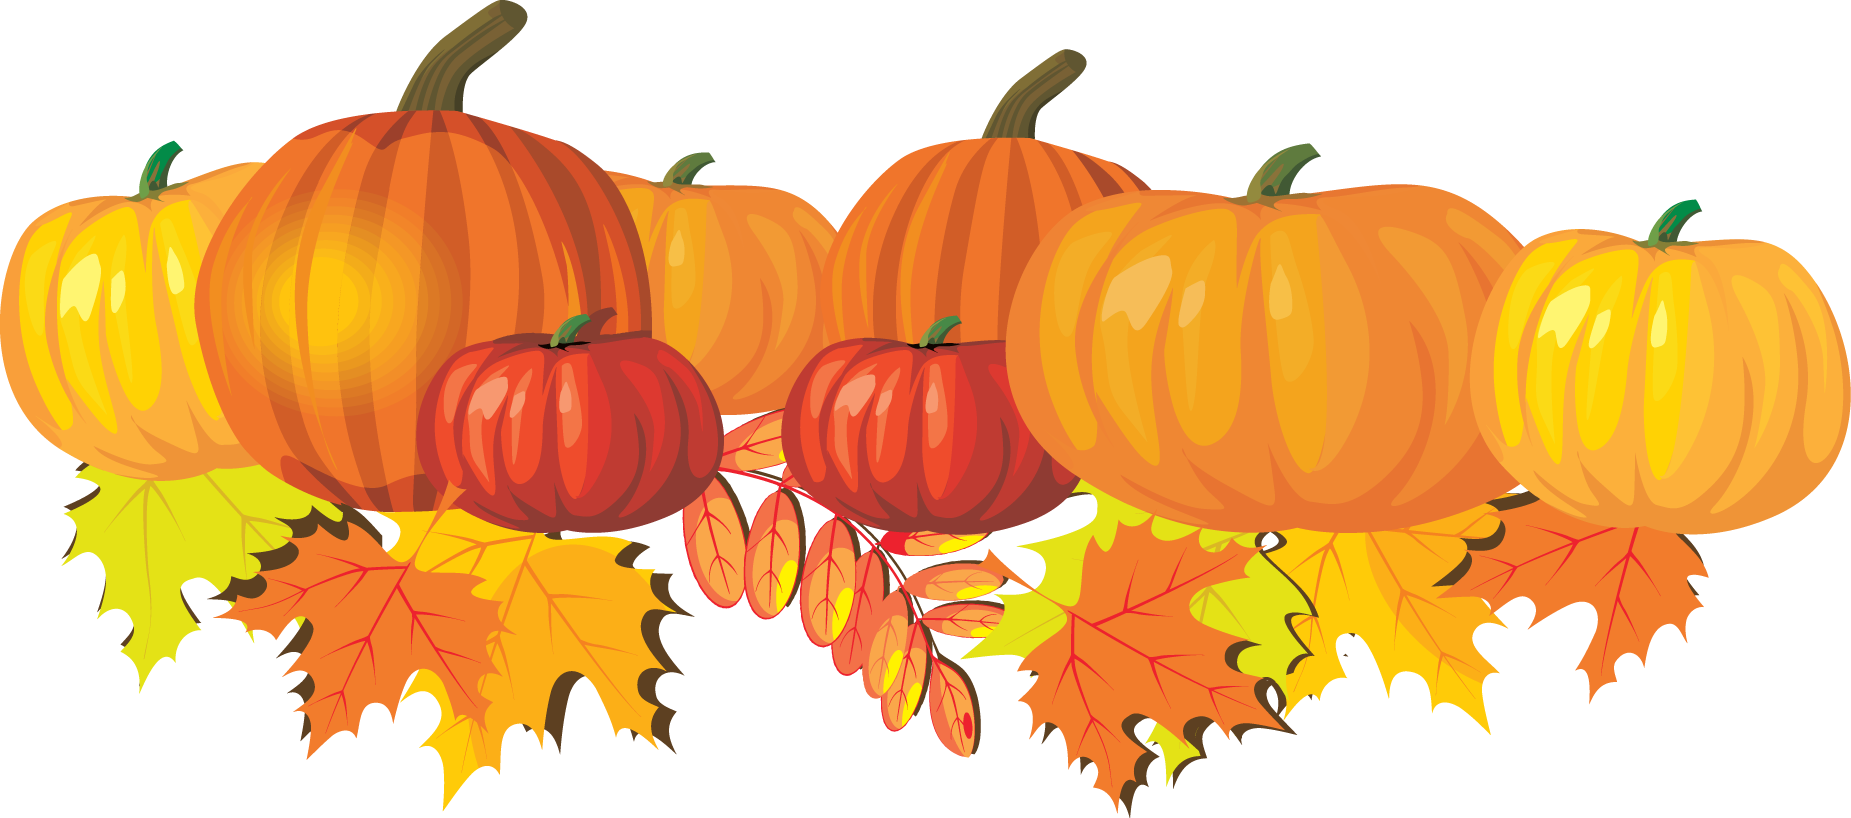 october clipart watercolor